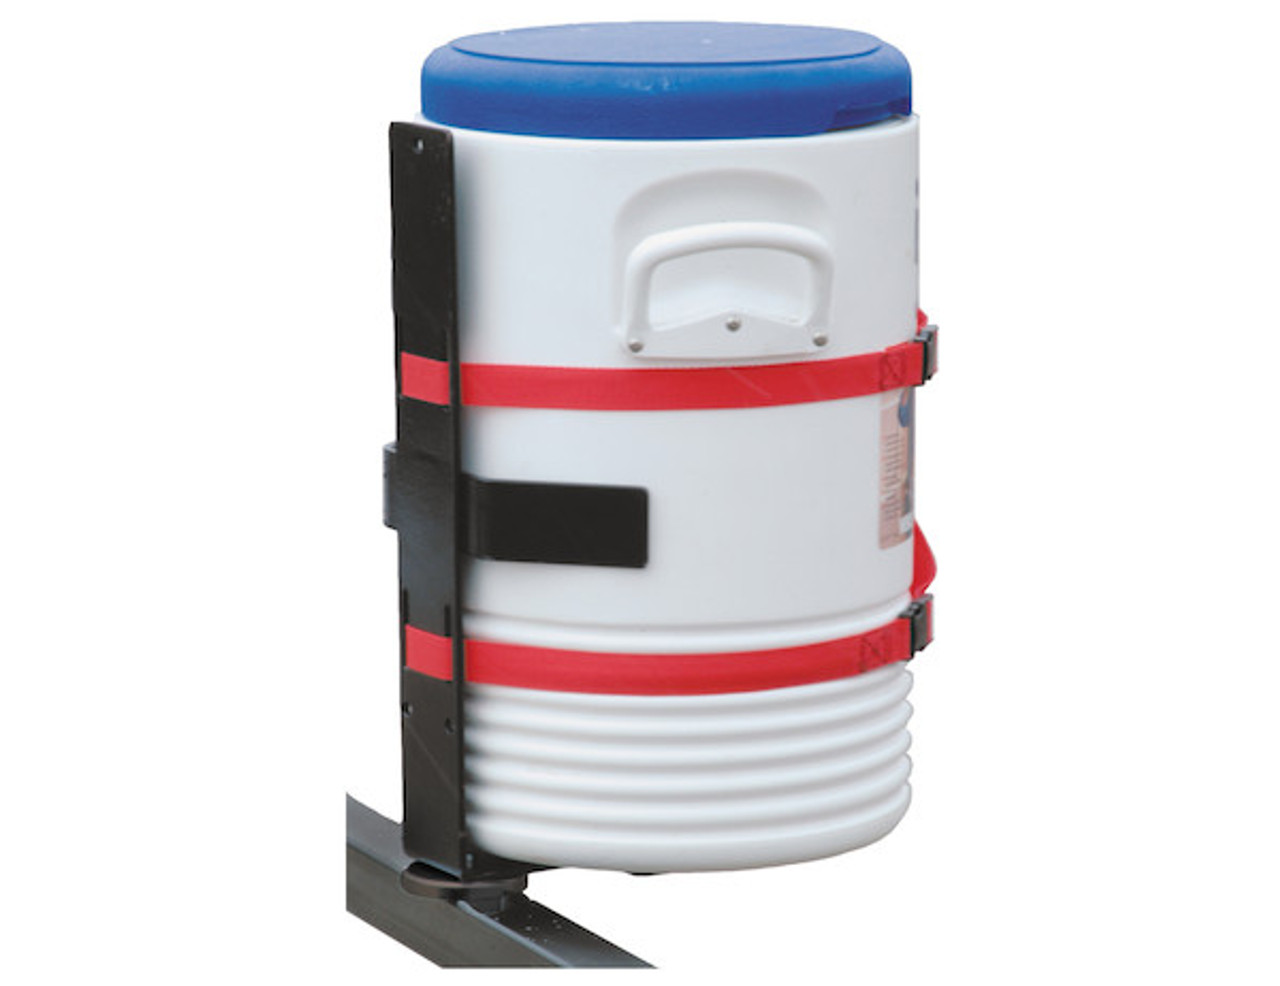 Buyers LT25 Water Cooler Rack for Landscaping Trailers, Utility Vehicles and Garages Picture # 1